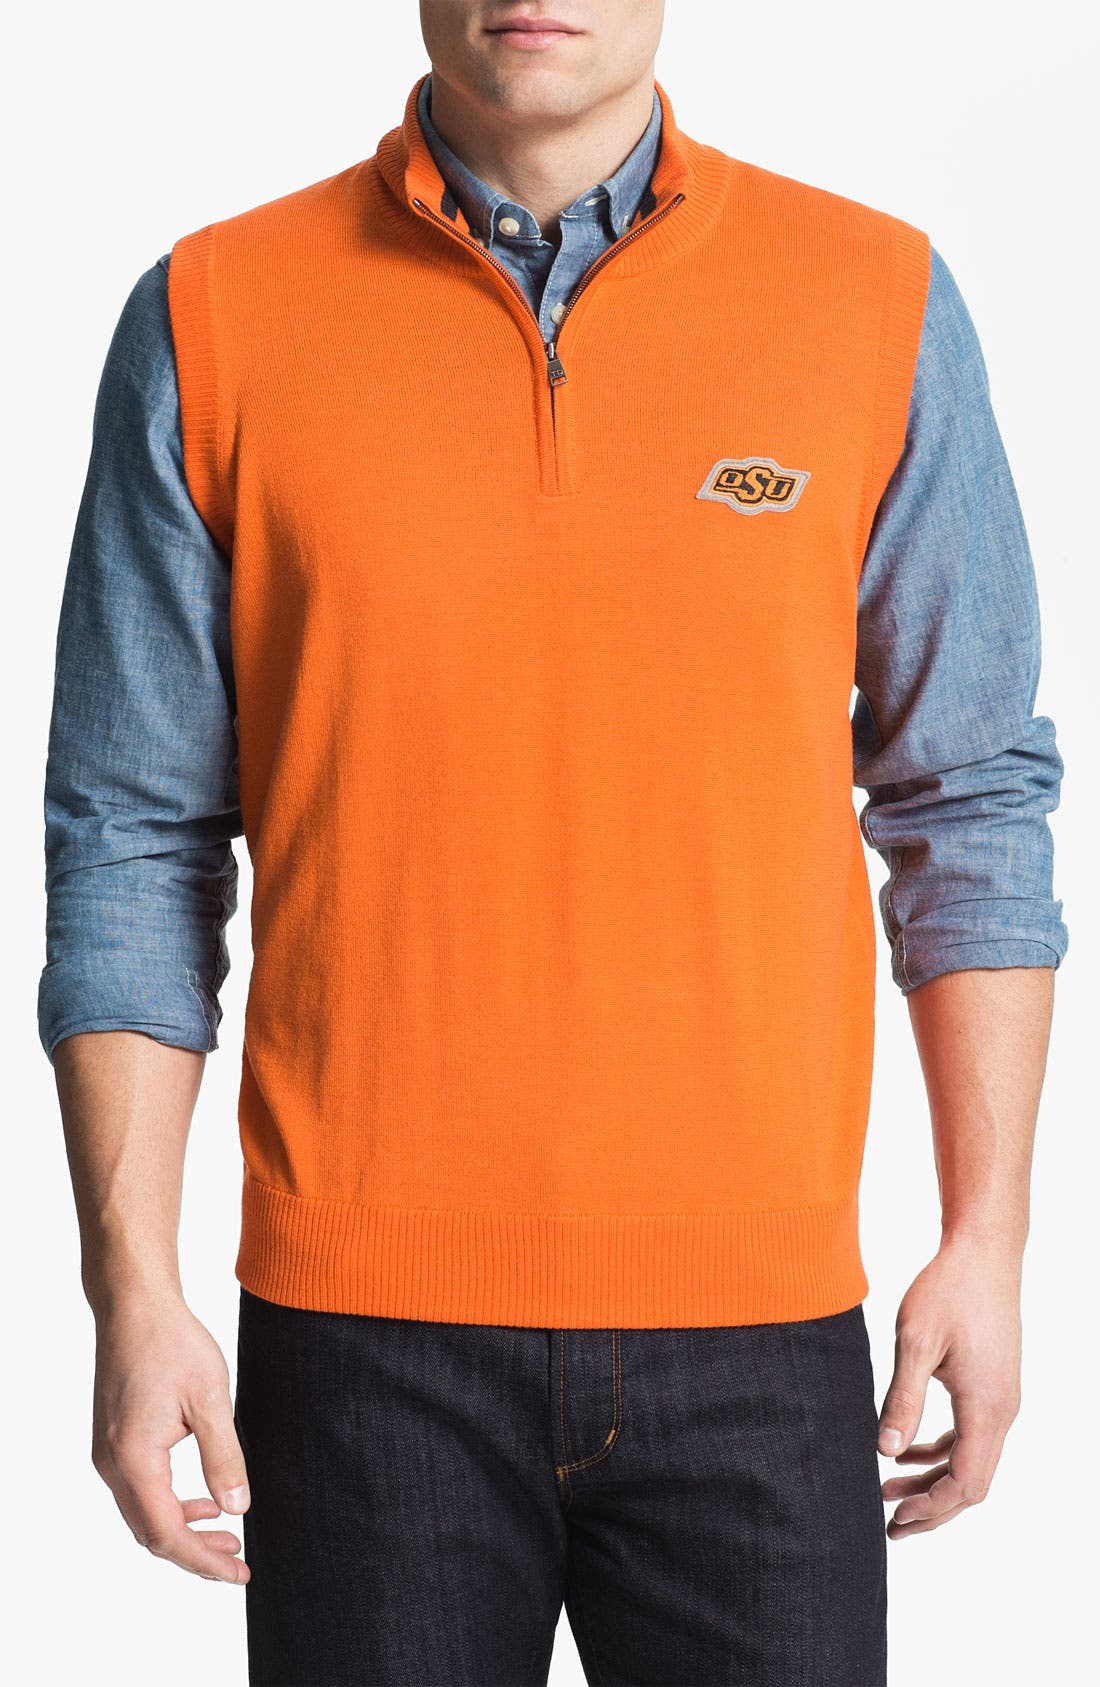 Alternate Image 1 Selected - Thomas Dean 'Oklahoma State' Quarter Zip Sweater Vest